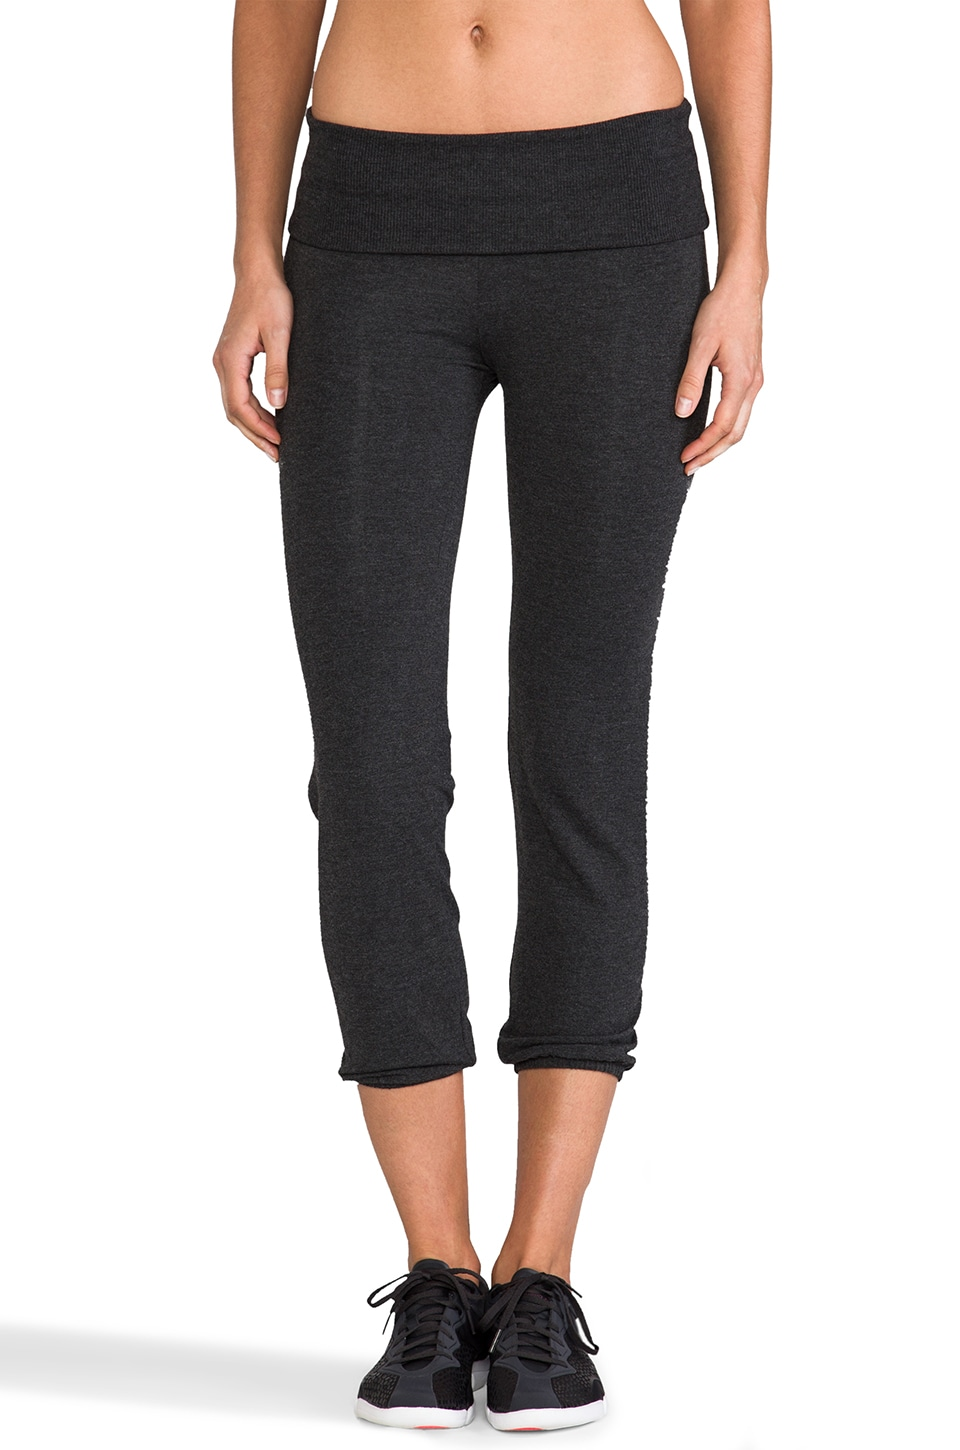 SOLOW Old School Sweatpants in Charcoal